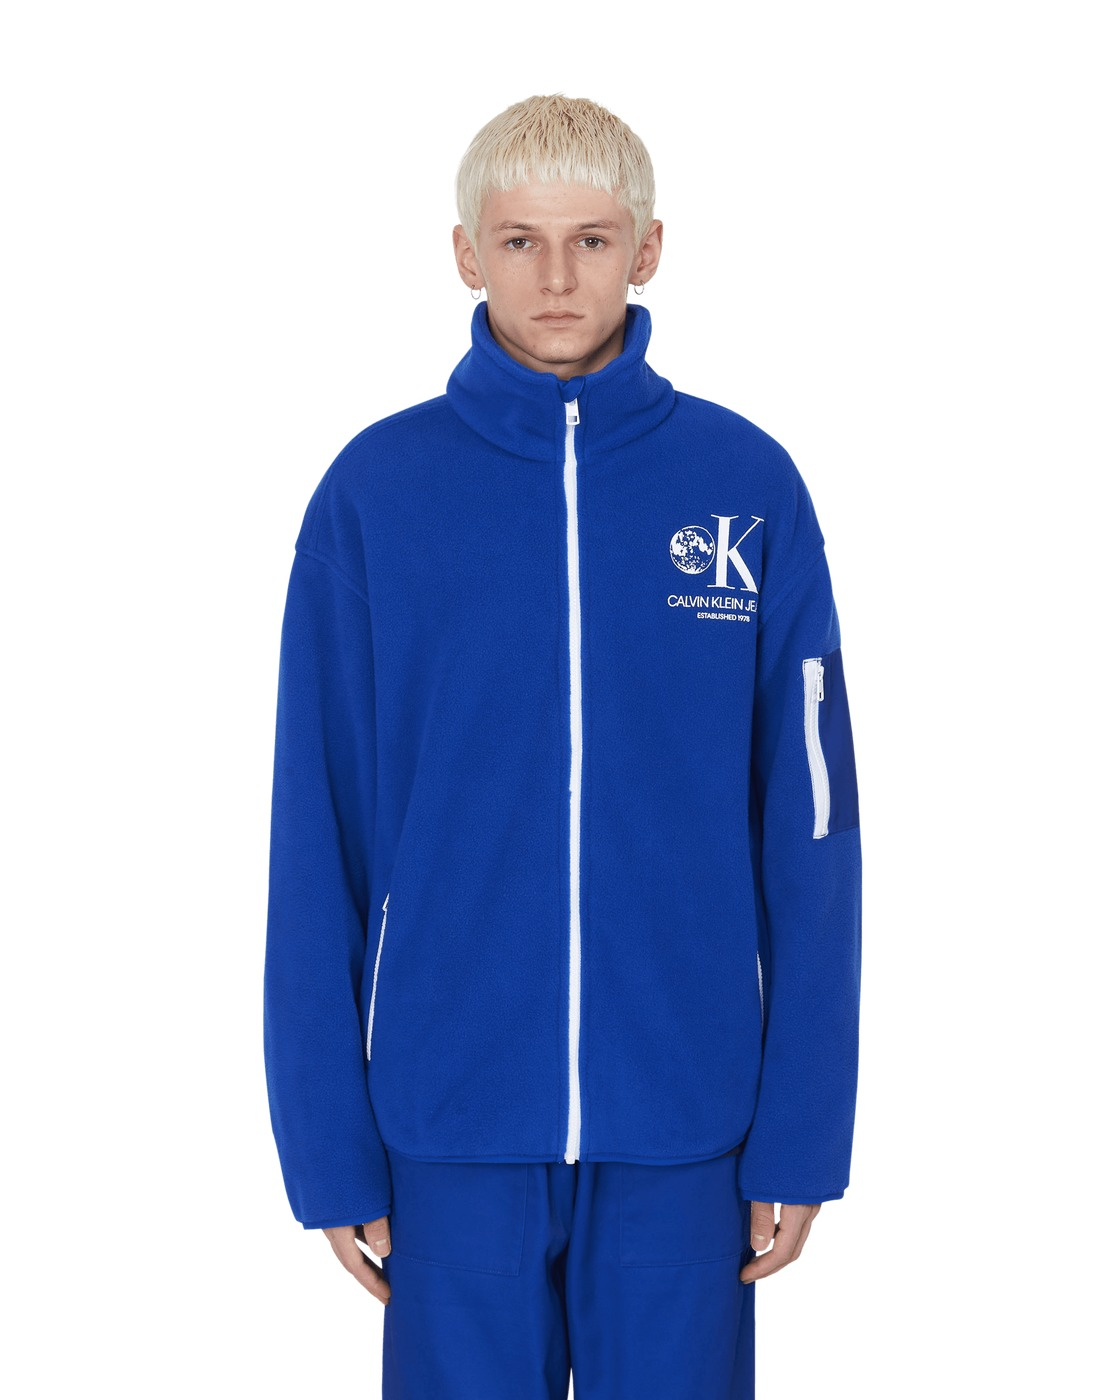 Photo: Calvin Klein Est. 1978 Graphic Fleece Jacket Surf The Web